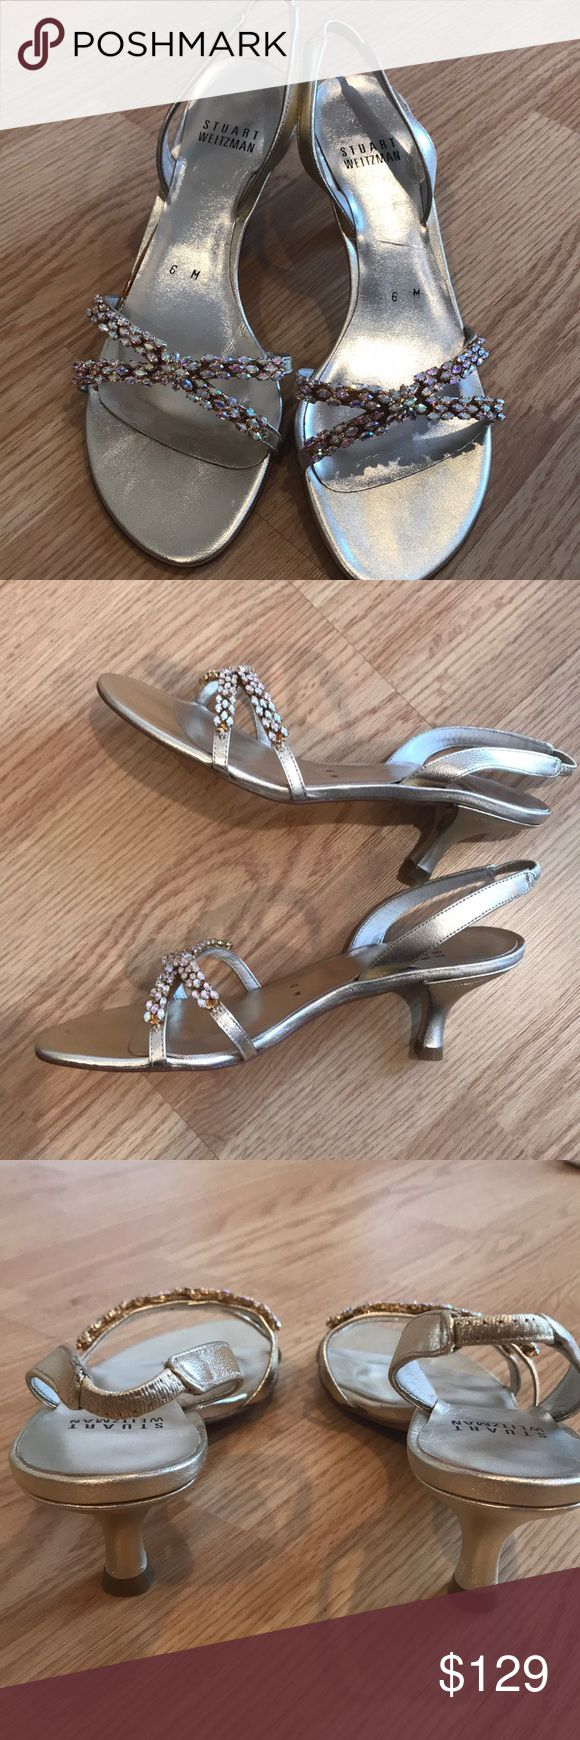 "Stuart Weitzman ""Fabulous"" Slingback Sandal Gold leather slingback sandal.  Iridescent crystals across straps. Pictures do not do them justice!  Brand new in box. Slightly irregular (minor discoloration on heel- see photos) Stuart Weitzman Shoes Sandals"